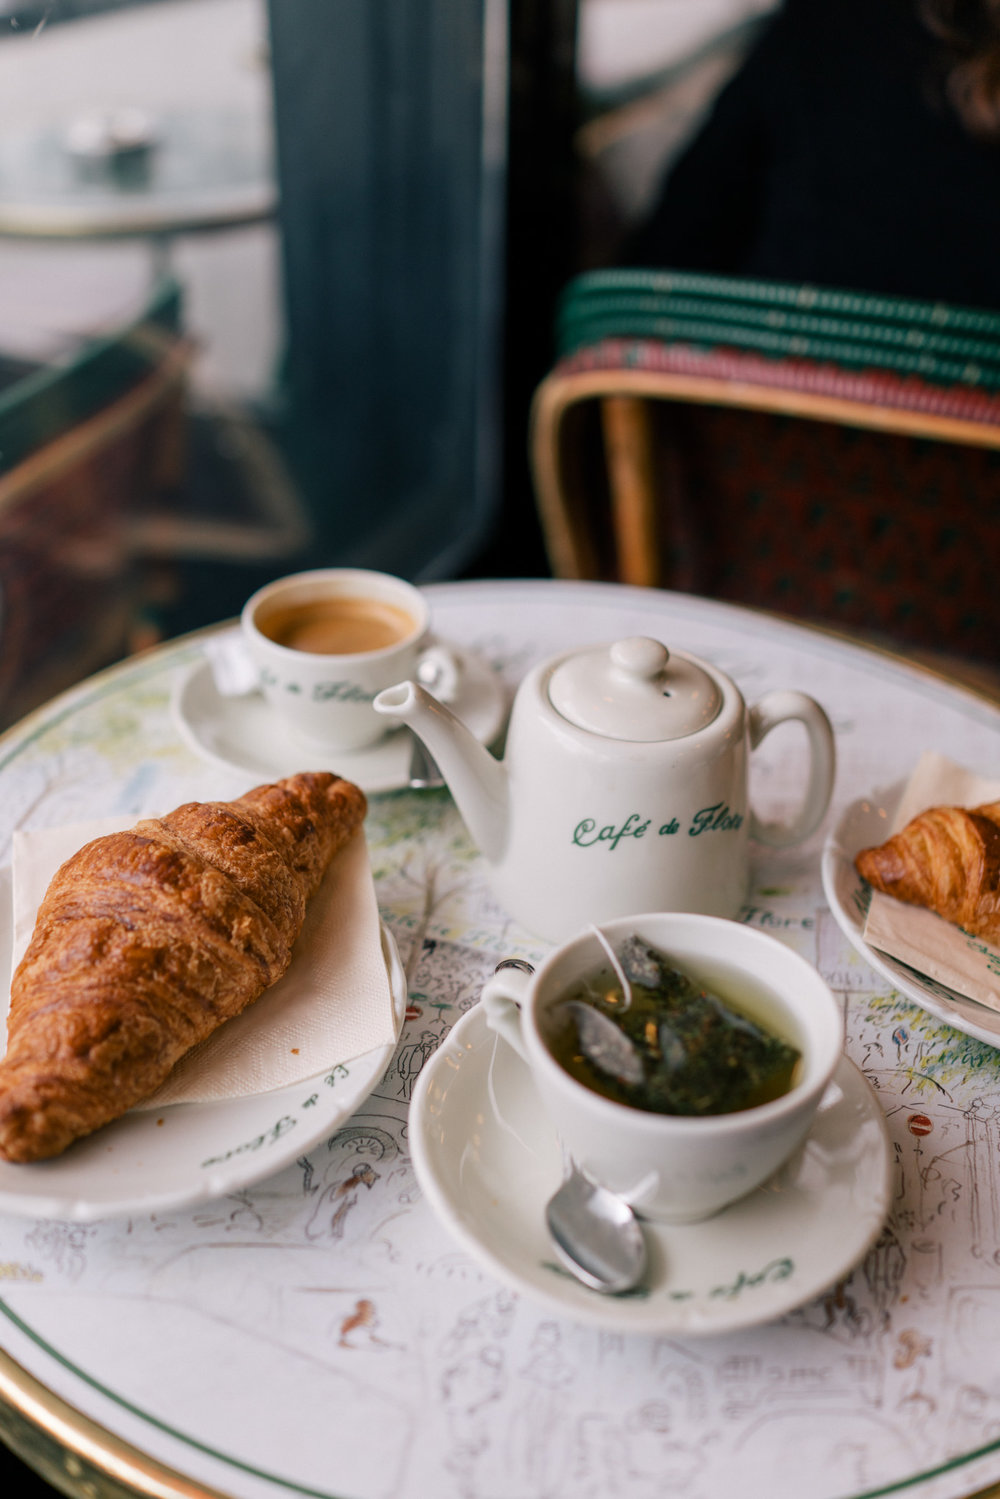 image via  cafe de flore